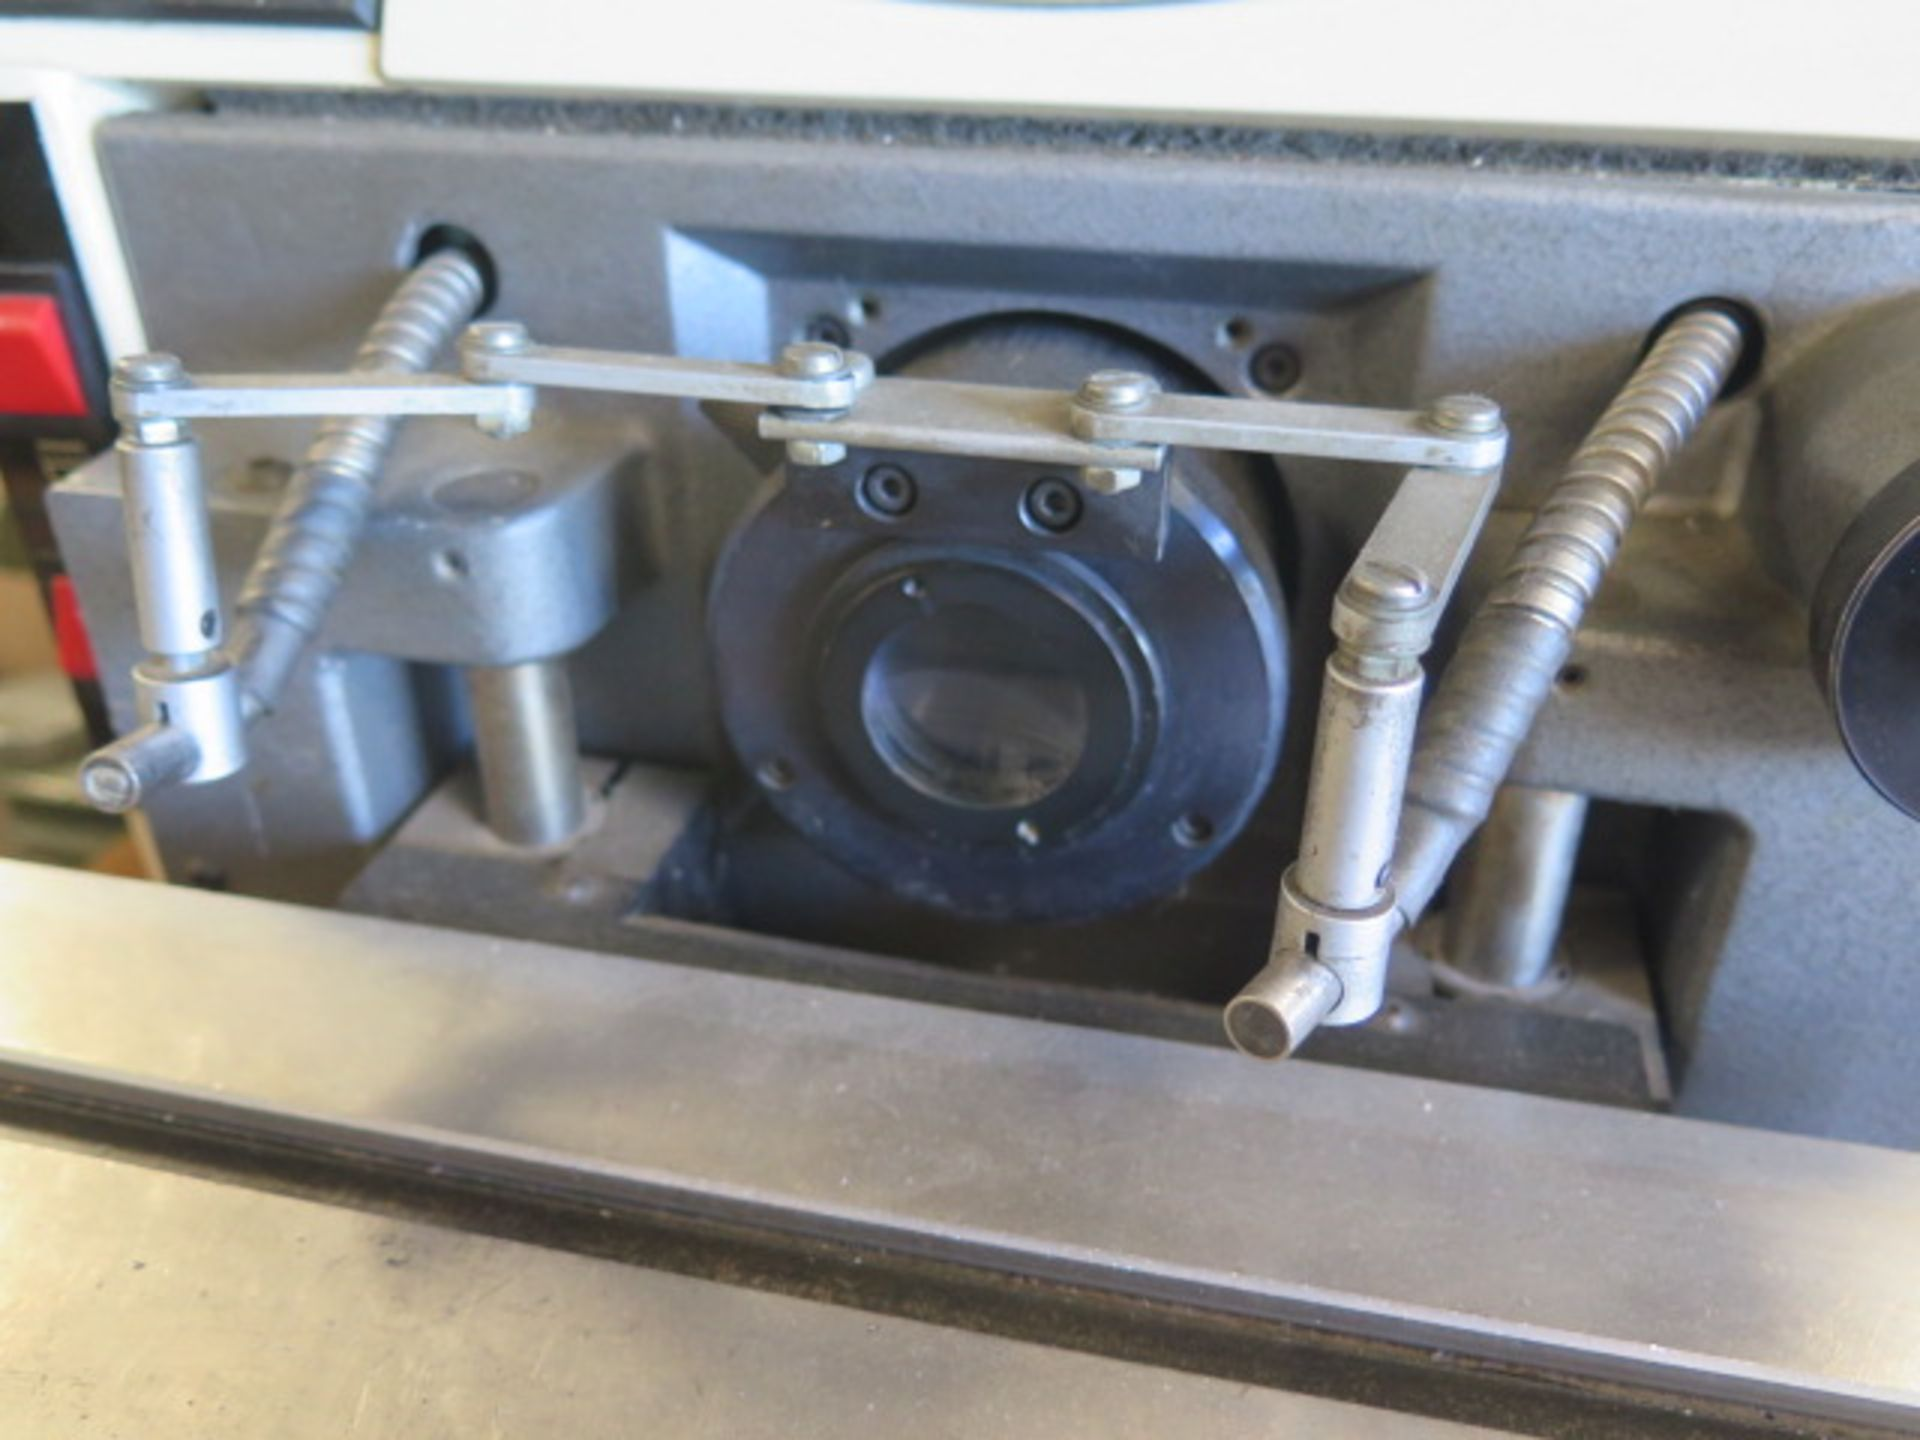 """Gage Master Series 20 13"""" Optical Comparator w/ Gage Master GM4 DRO, Dig Angular Readout, SOLD AS IS - Image 7 of 10"""